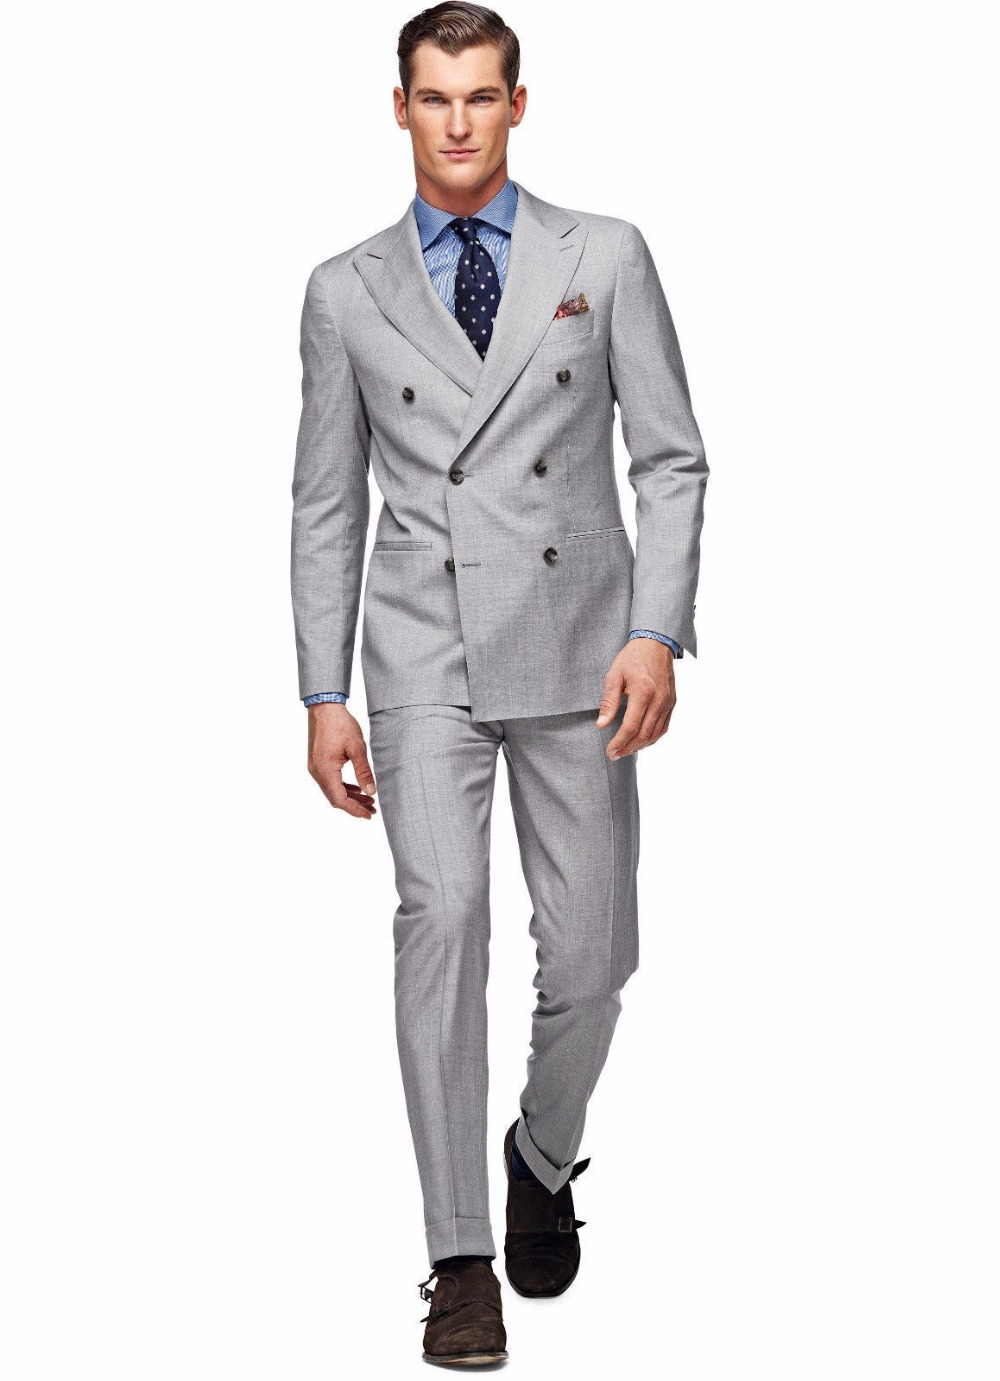 Compare Prices on Mens Suit- Online Shopping/Buy Low Price Mens ...